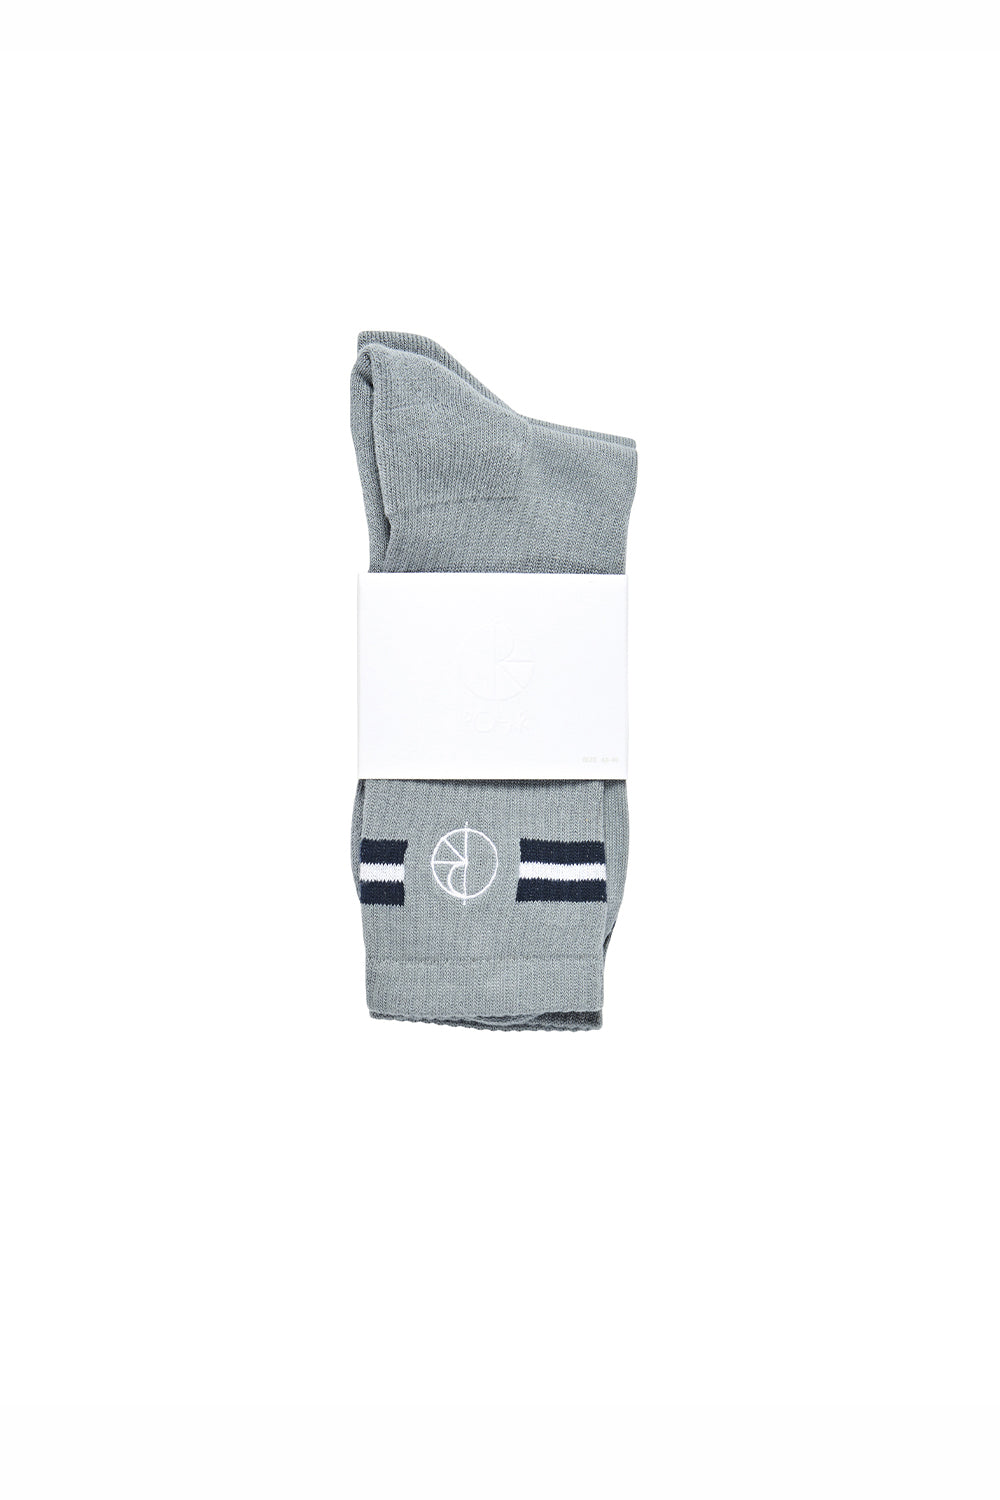 Polar Skate Co Stroke Logo Socks - Grey/Blue/White